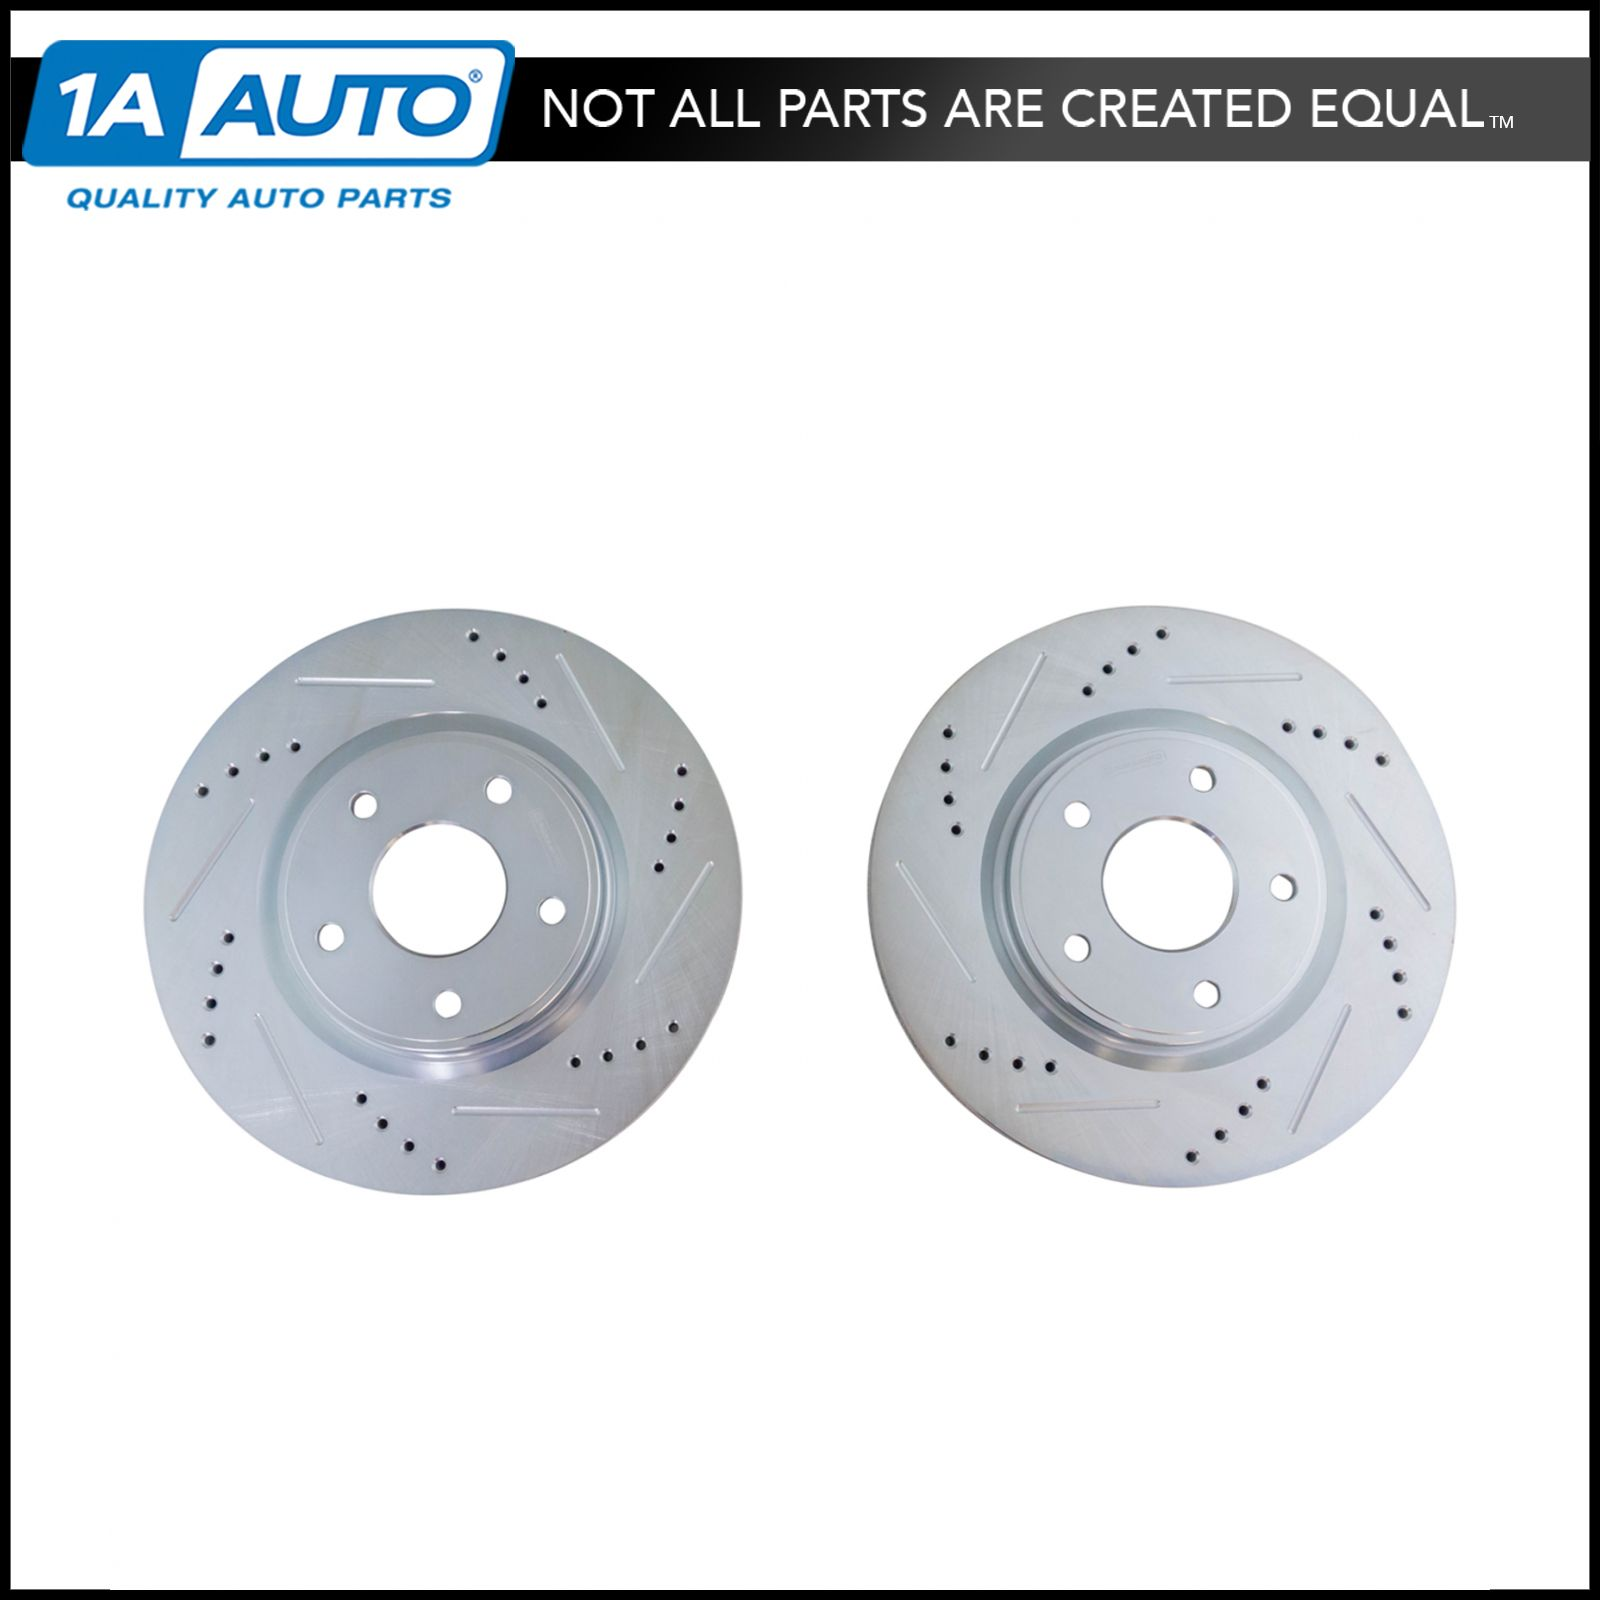 Nakamoto Brake Rotor Performance Drilled Slotted Zinc Coated Rear Pair for Dodge